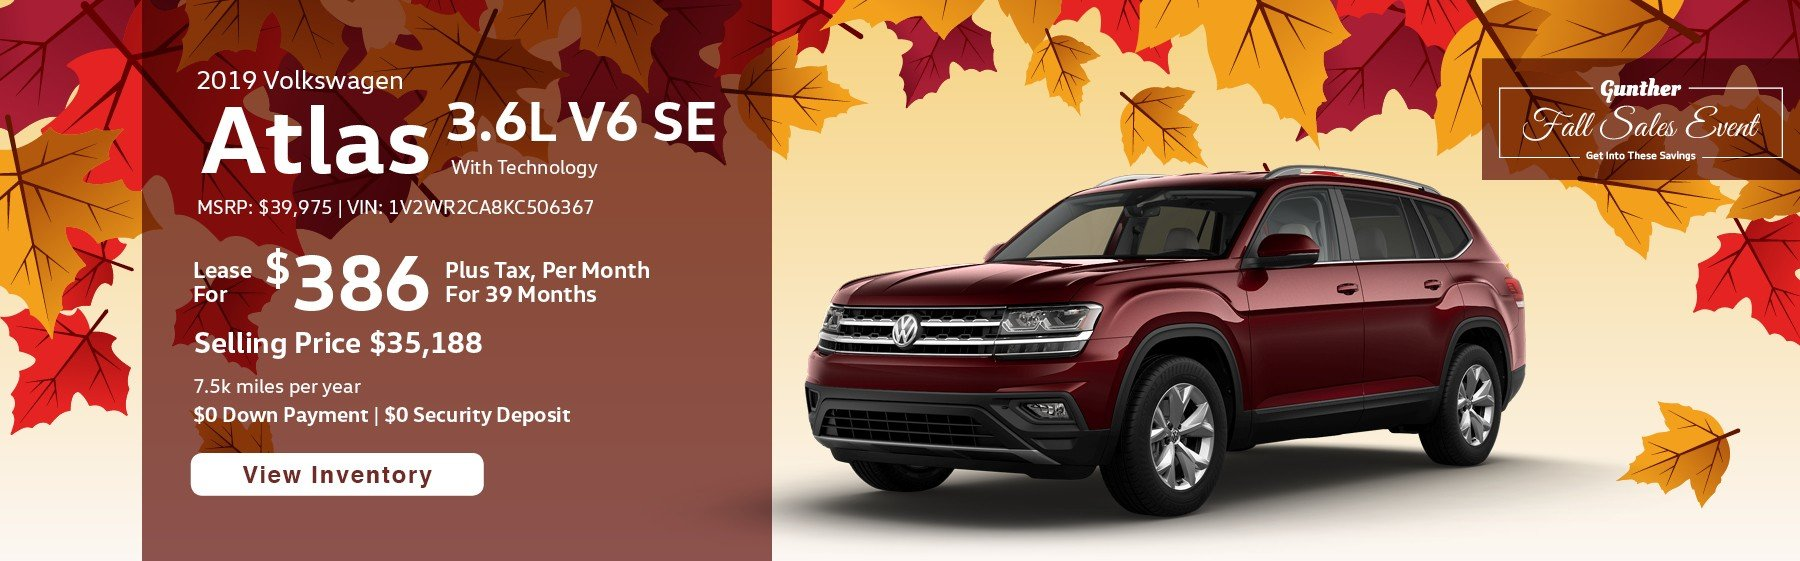 Lease the 2019 Atlas 3.6L V6 SE with Technology for $386 per month, plus tax for 39 months.